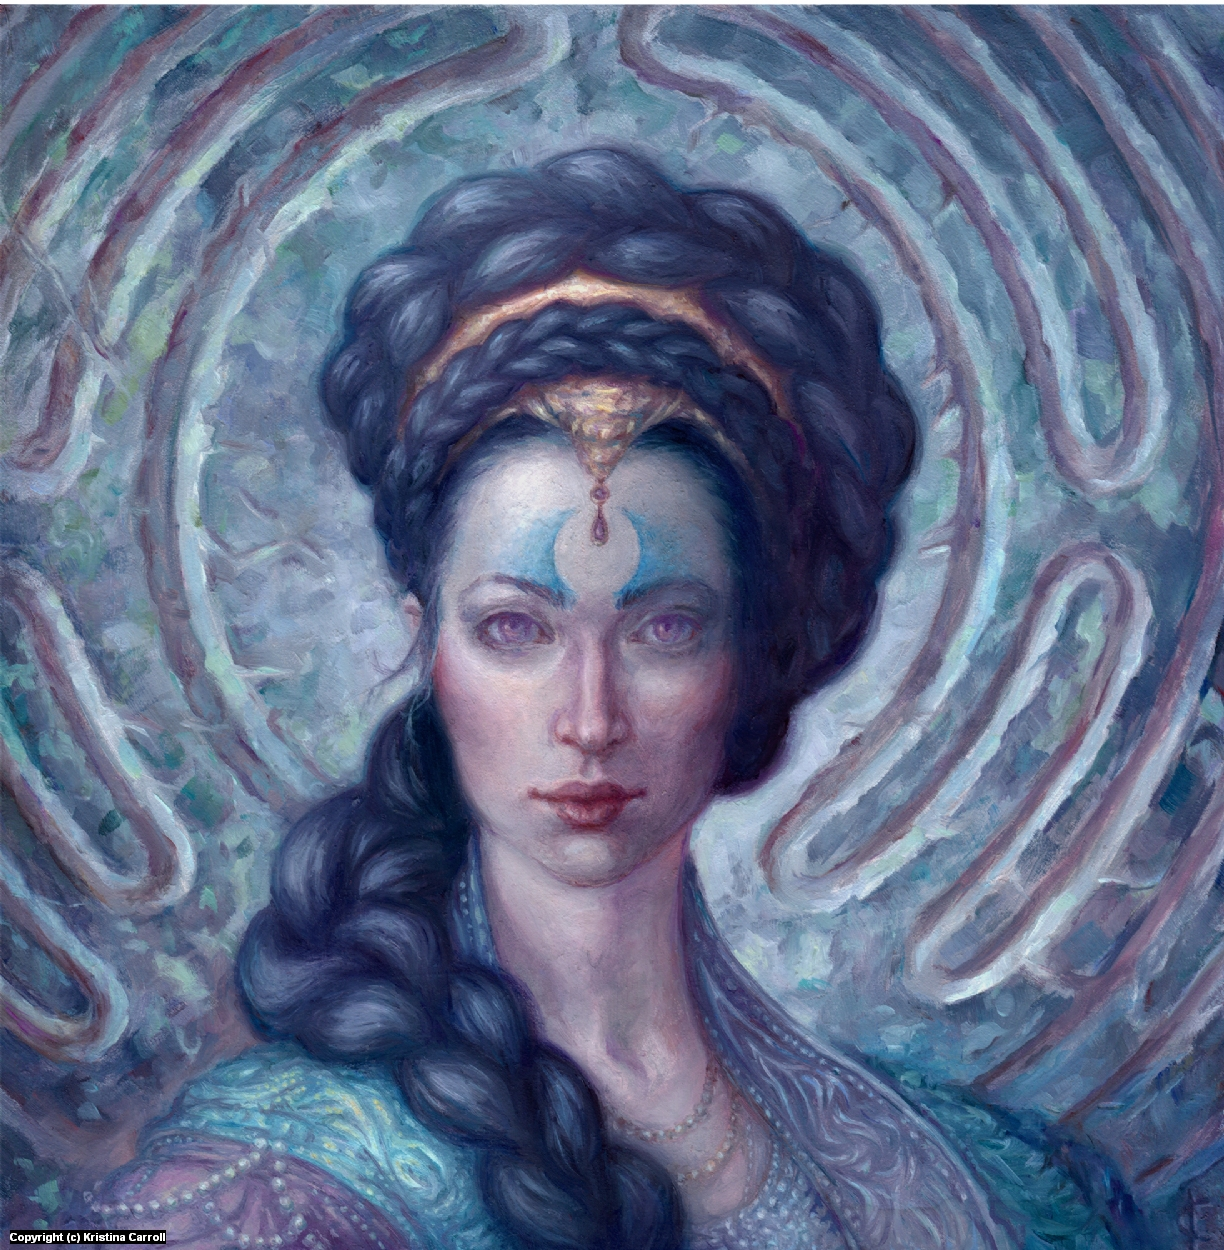 Mage of the Labyrinth Artwork by Kristina Carroll